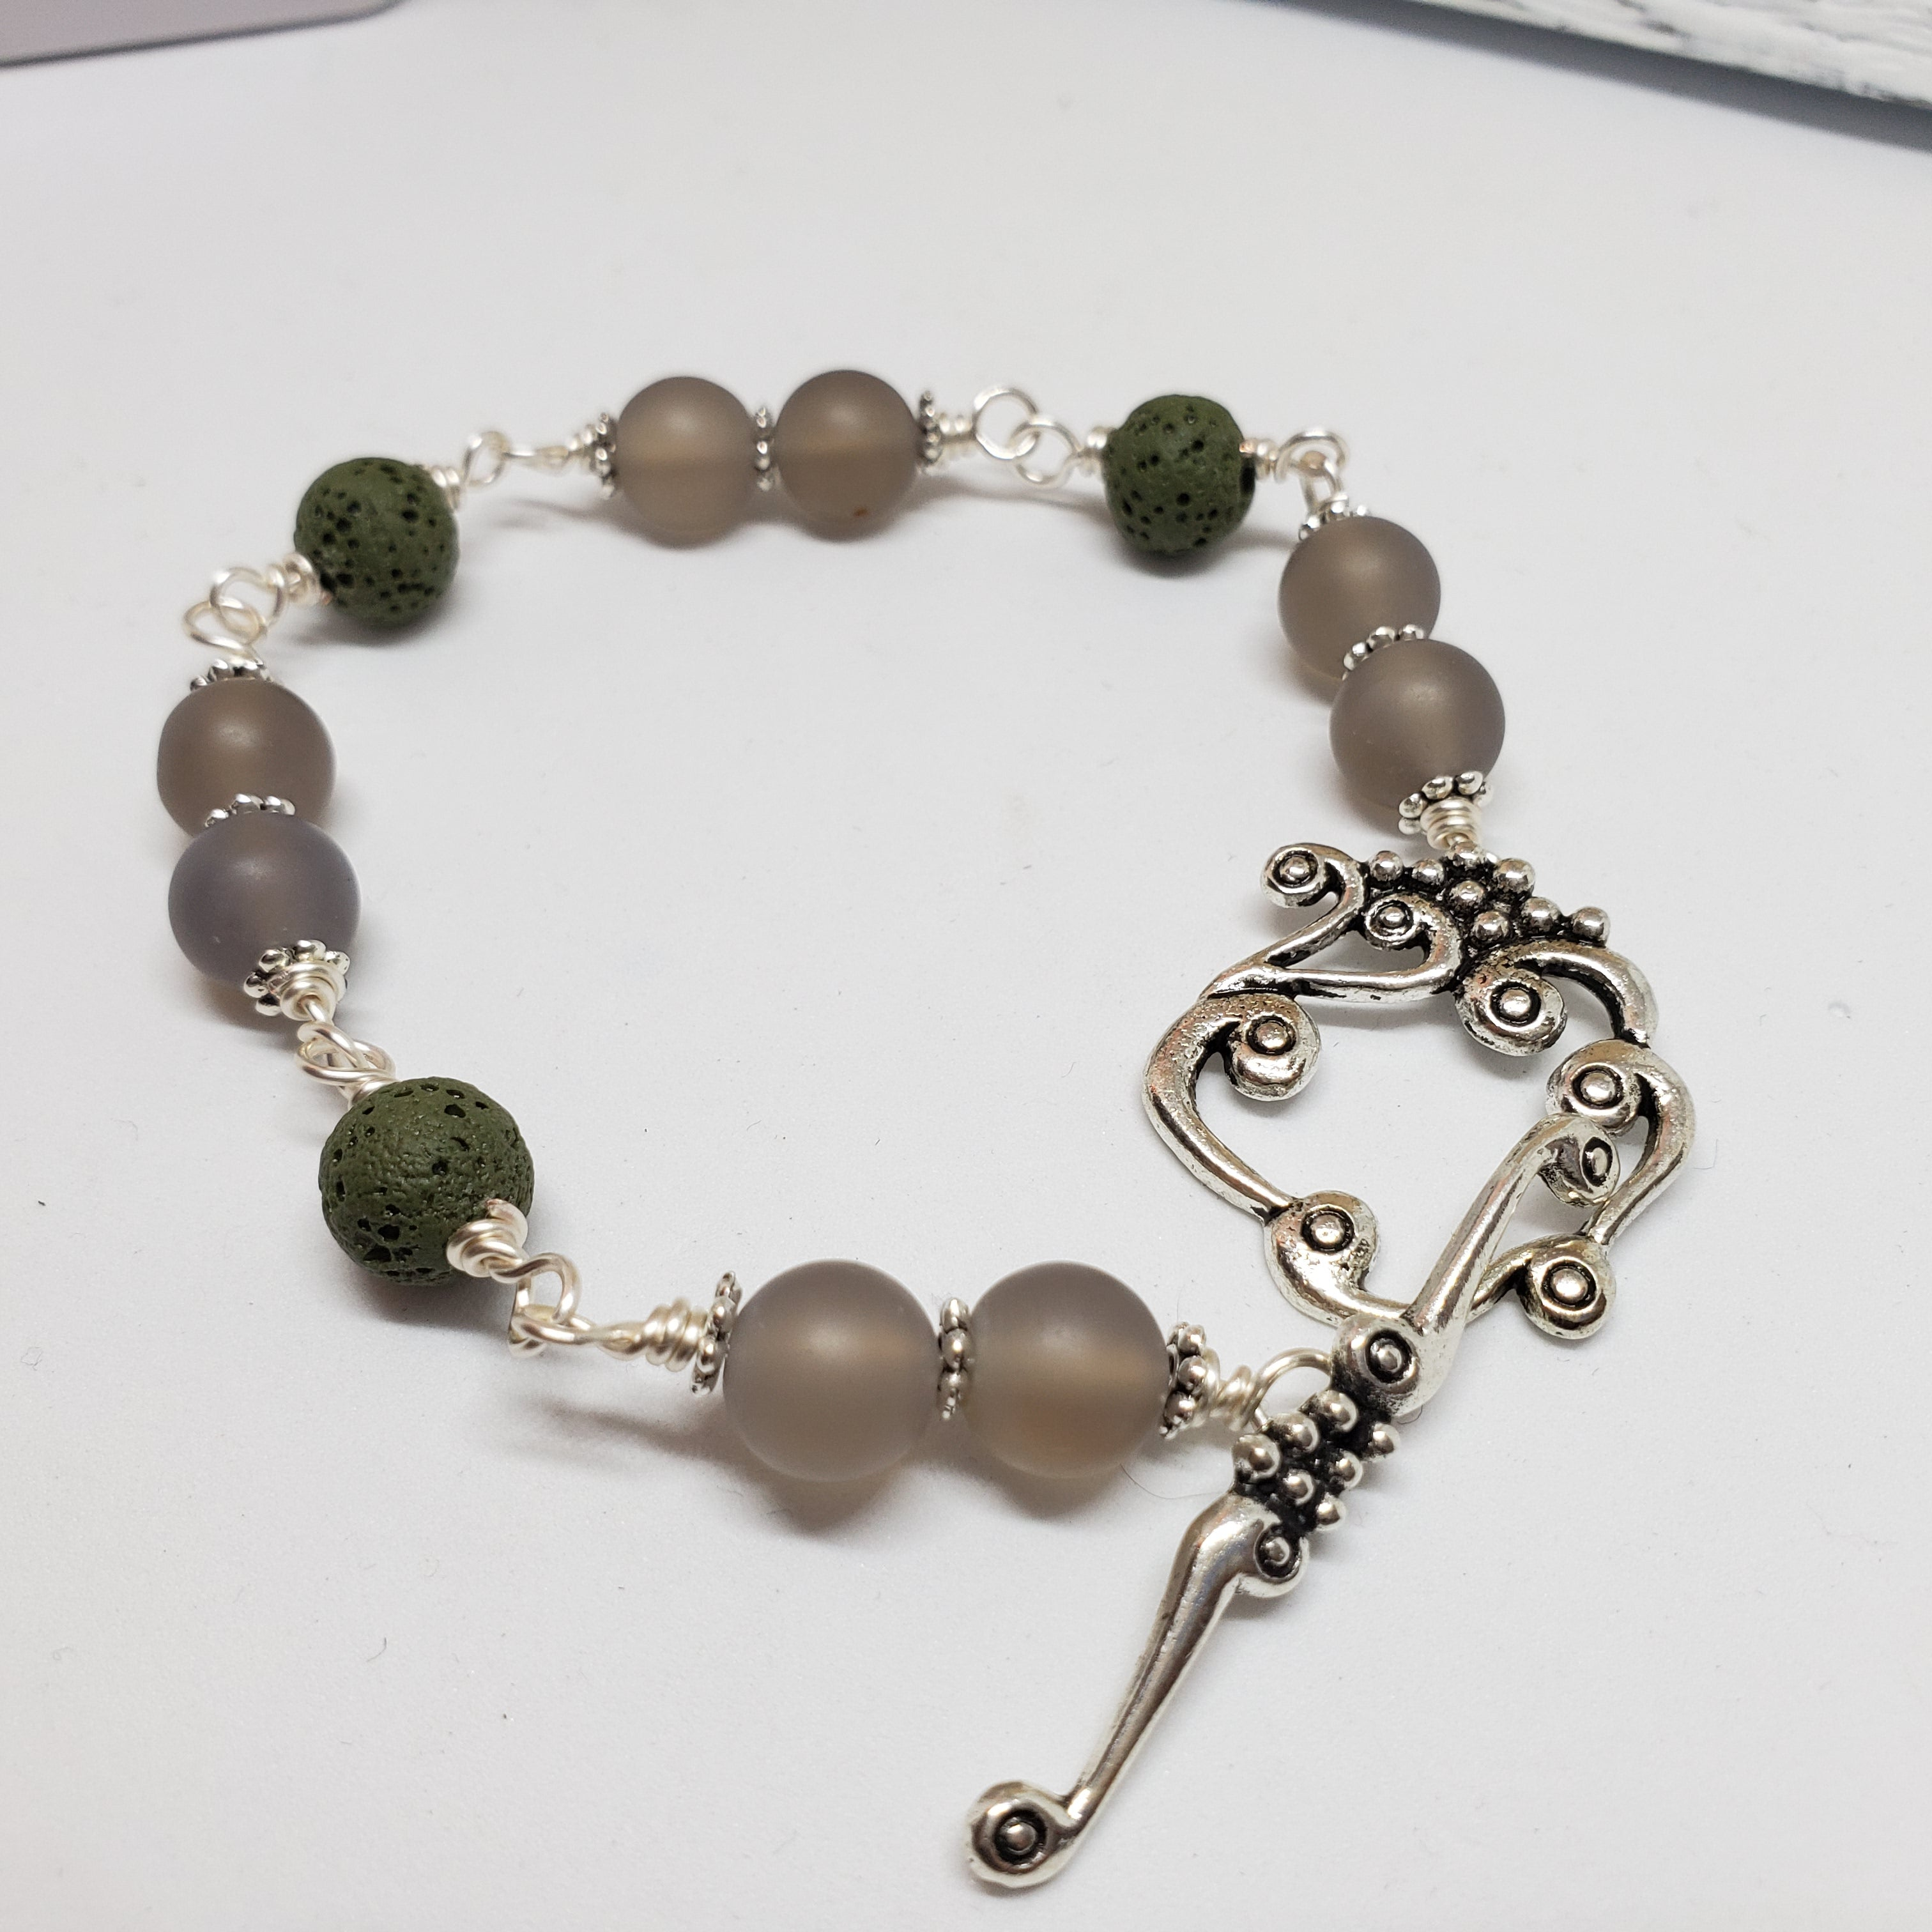 Frosted Grey Agate Diffuser Bracelet - Size Medium